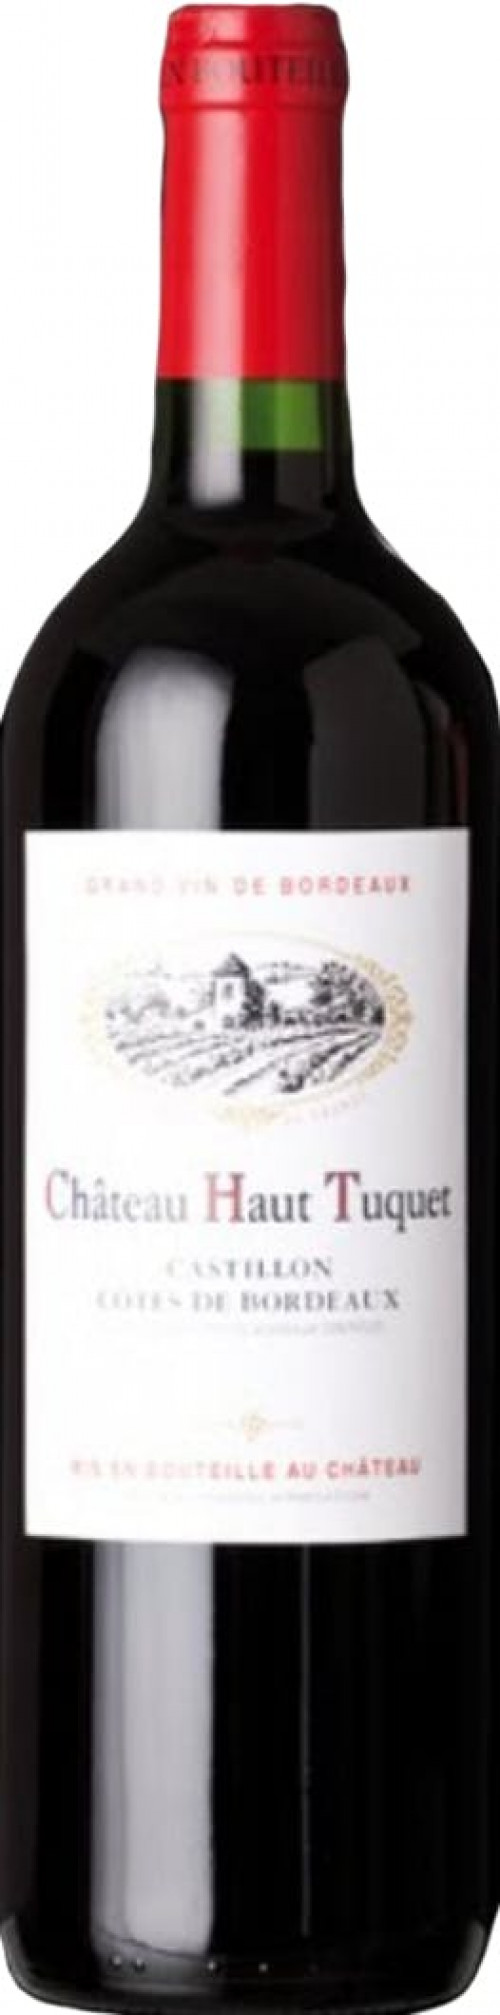 2018 Chateau Haut Tuquet, Cotes de Bordeaux Castillon 750ml